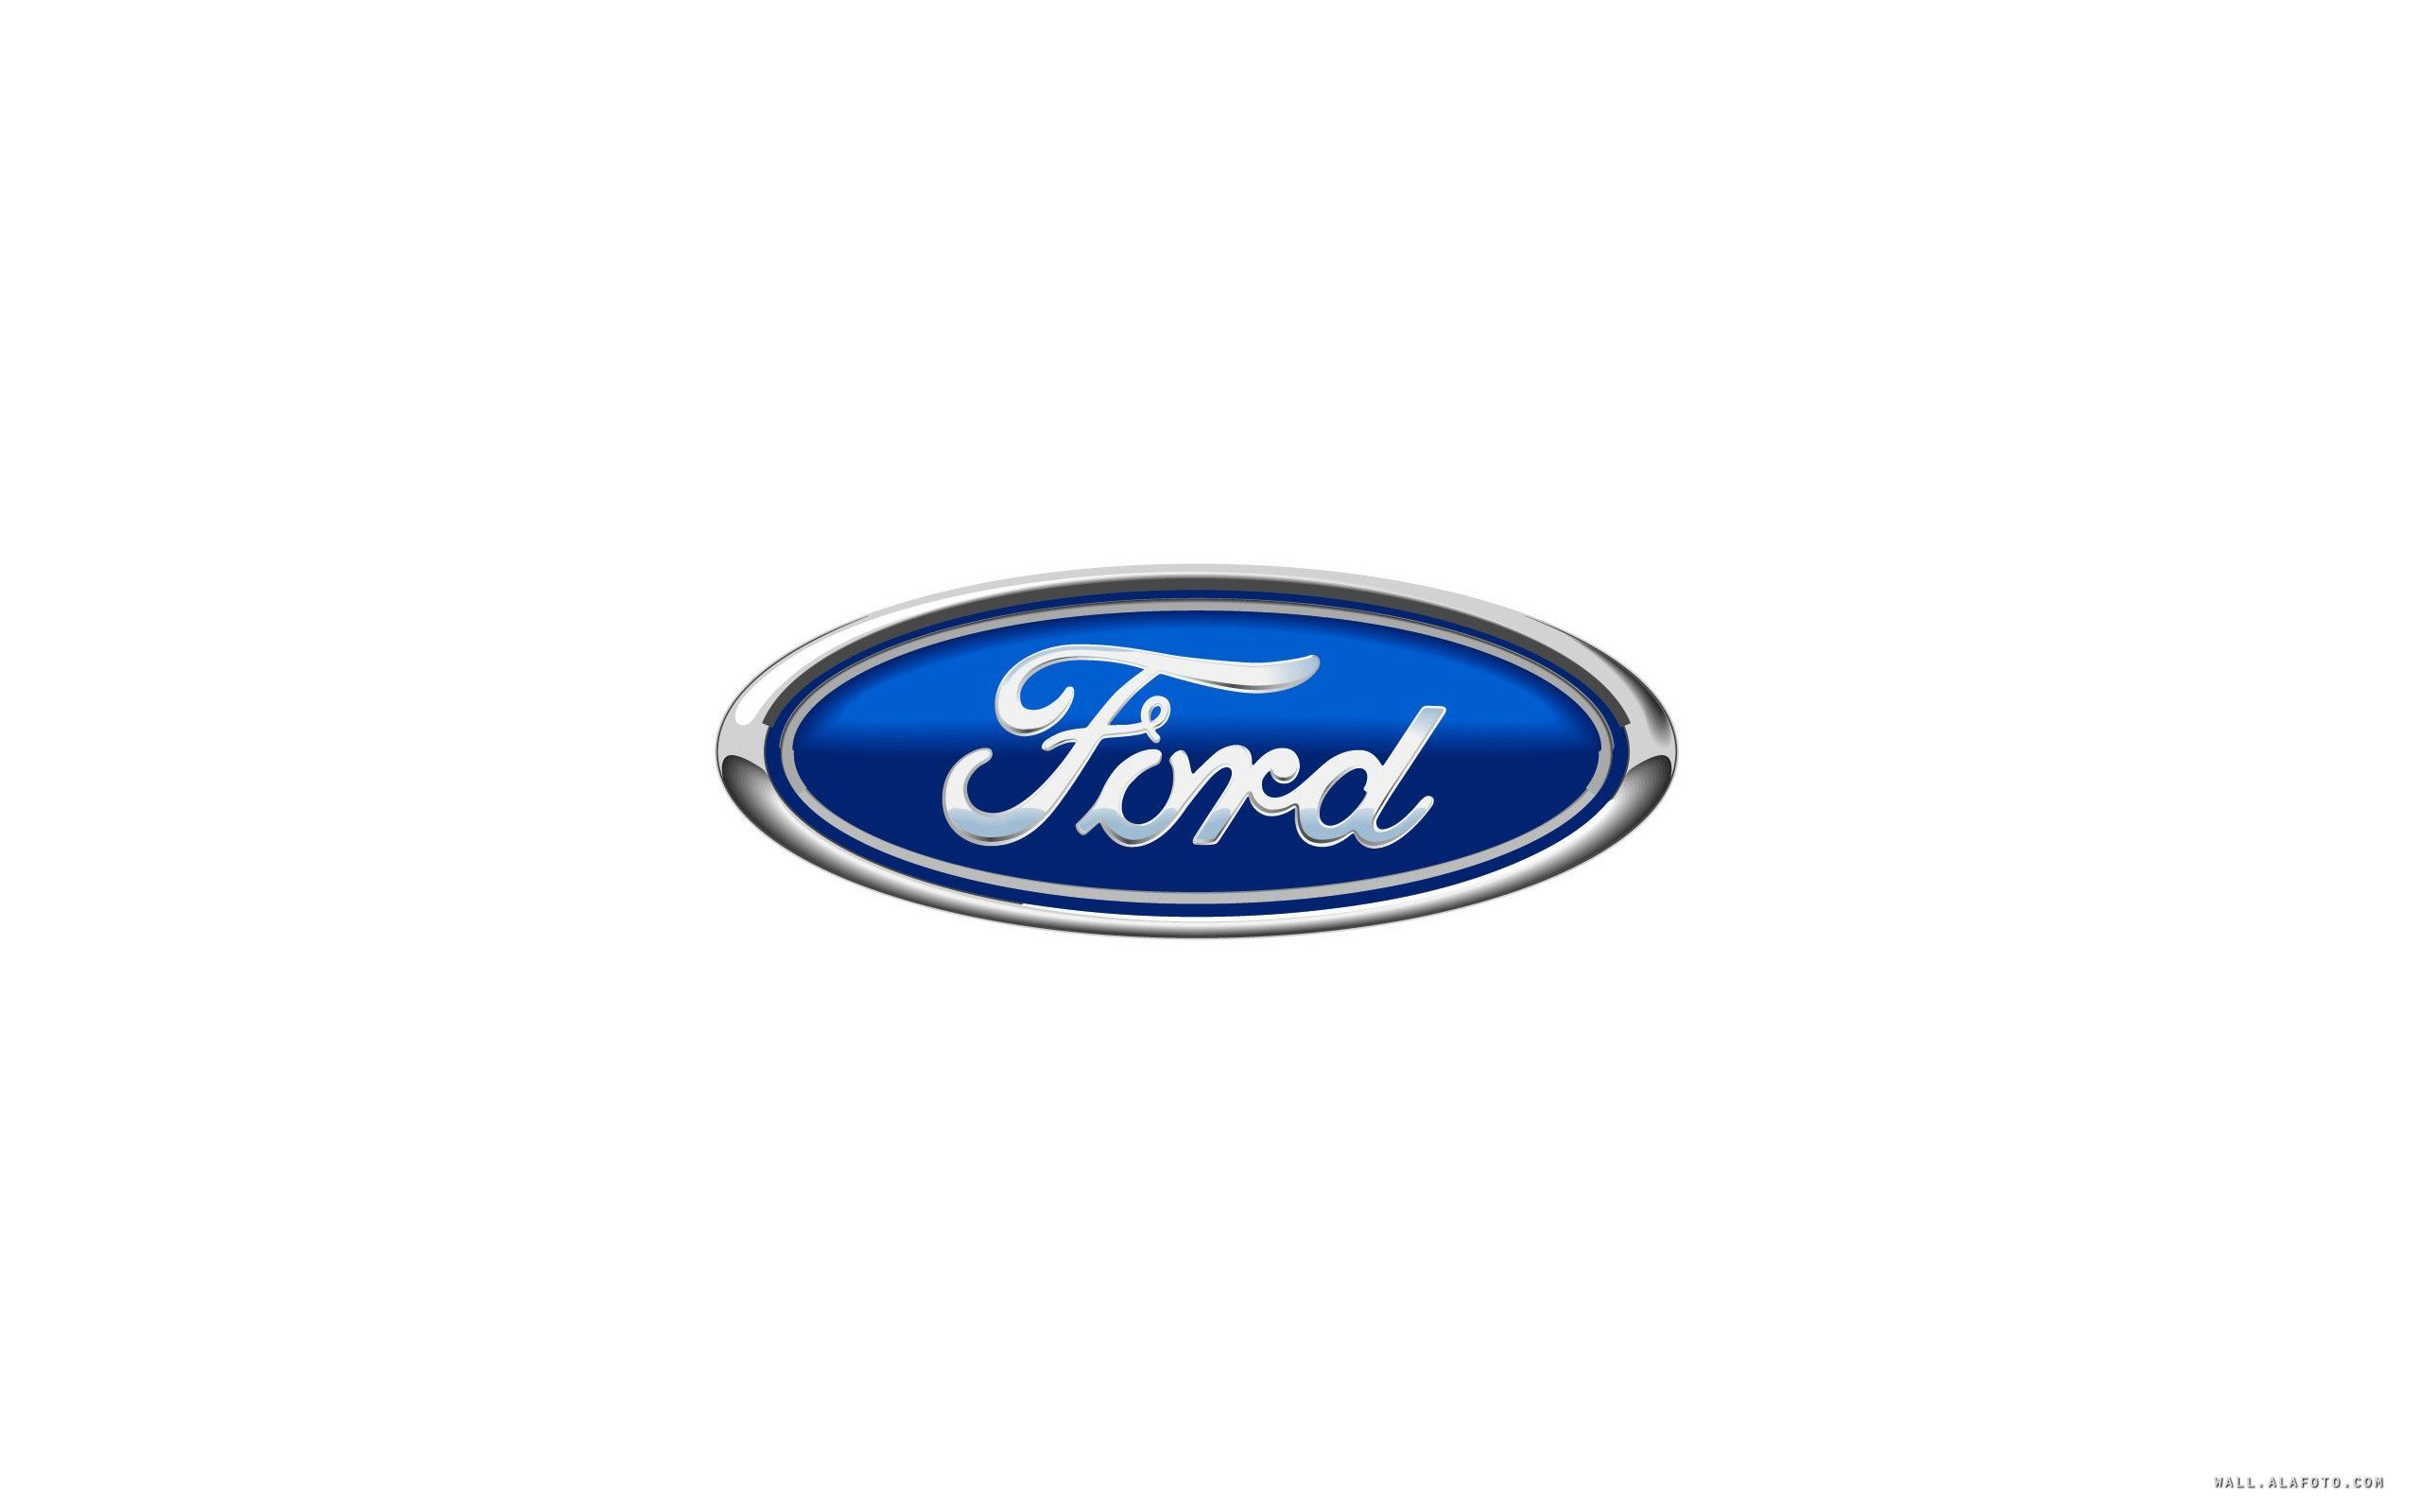 Built Ford Tough Logo Top Car Reviews 2019 2020